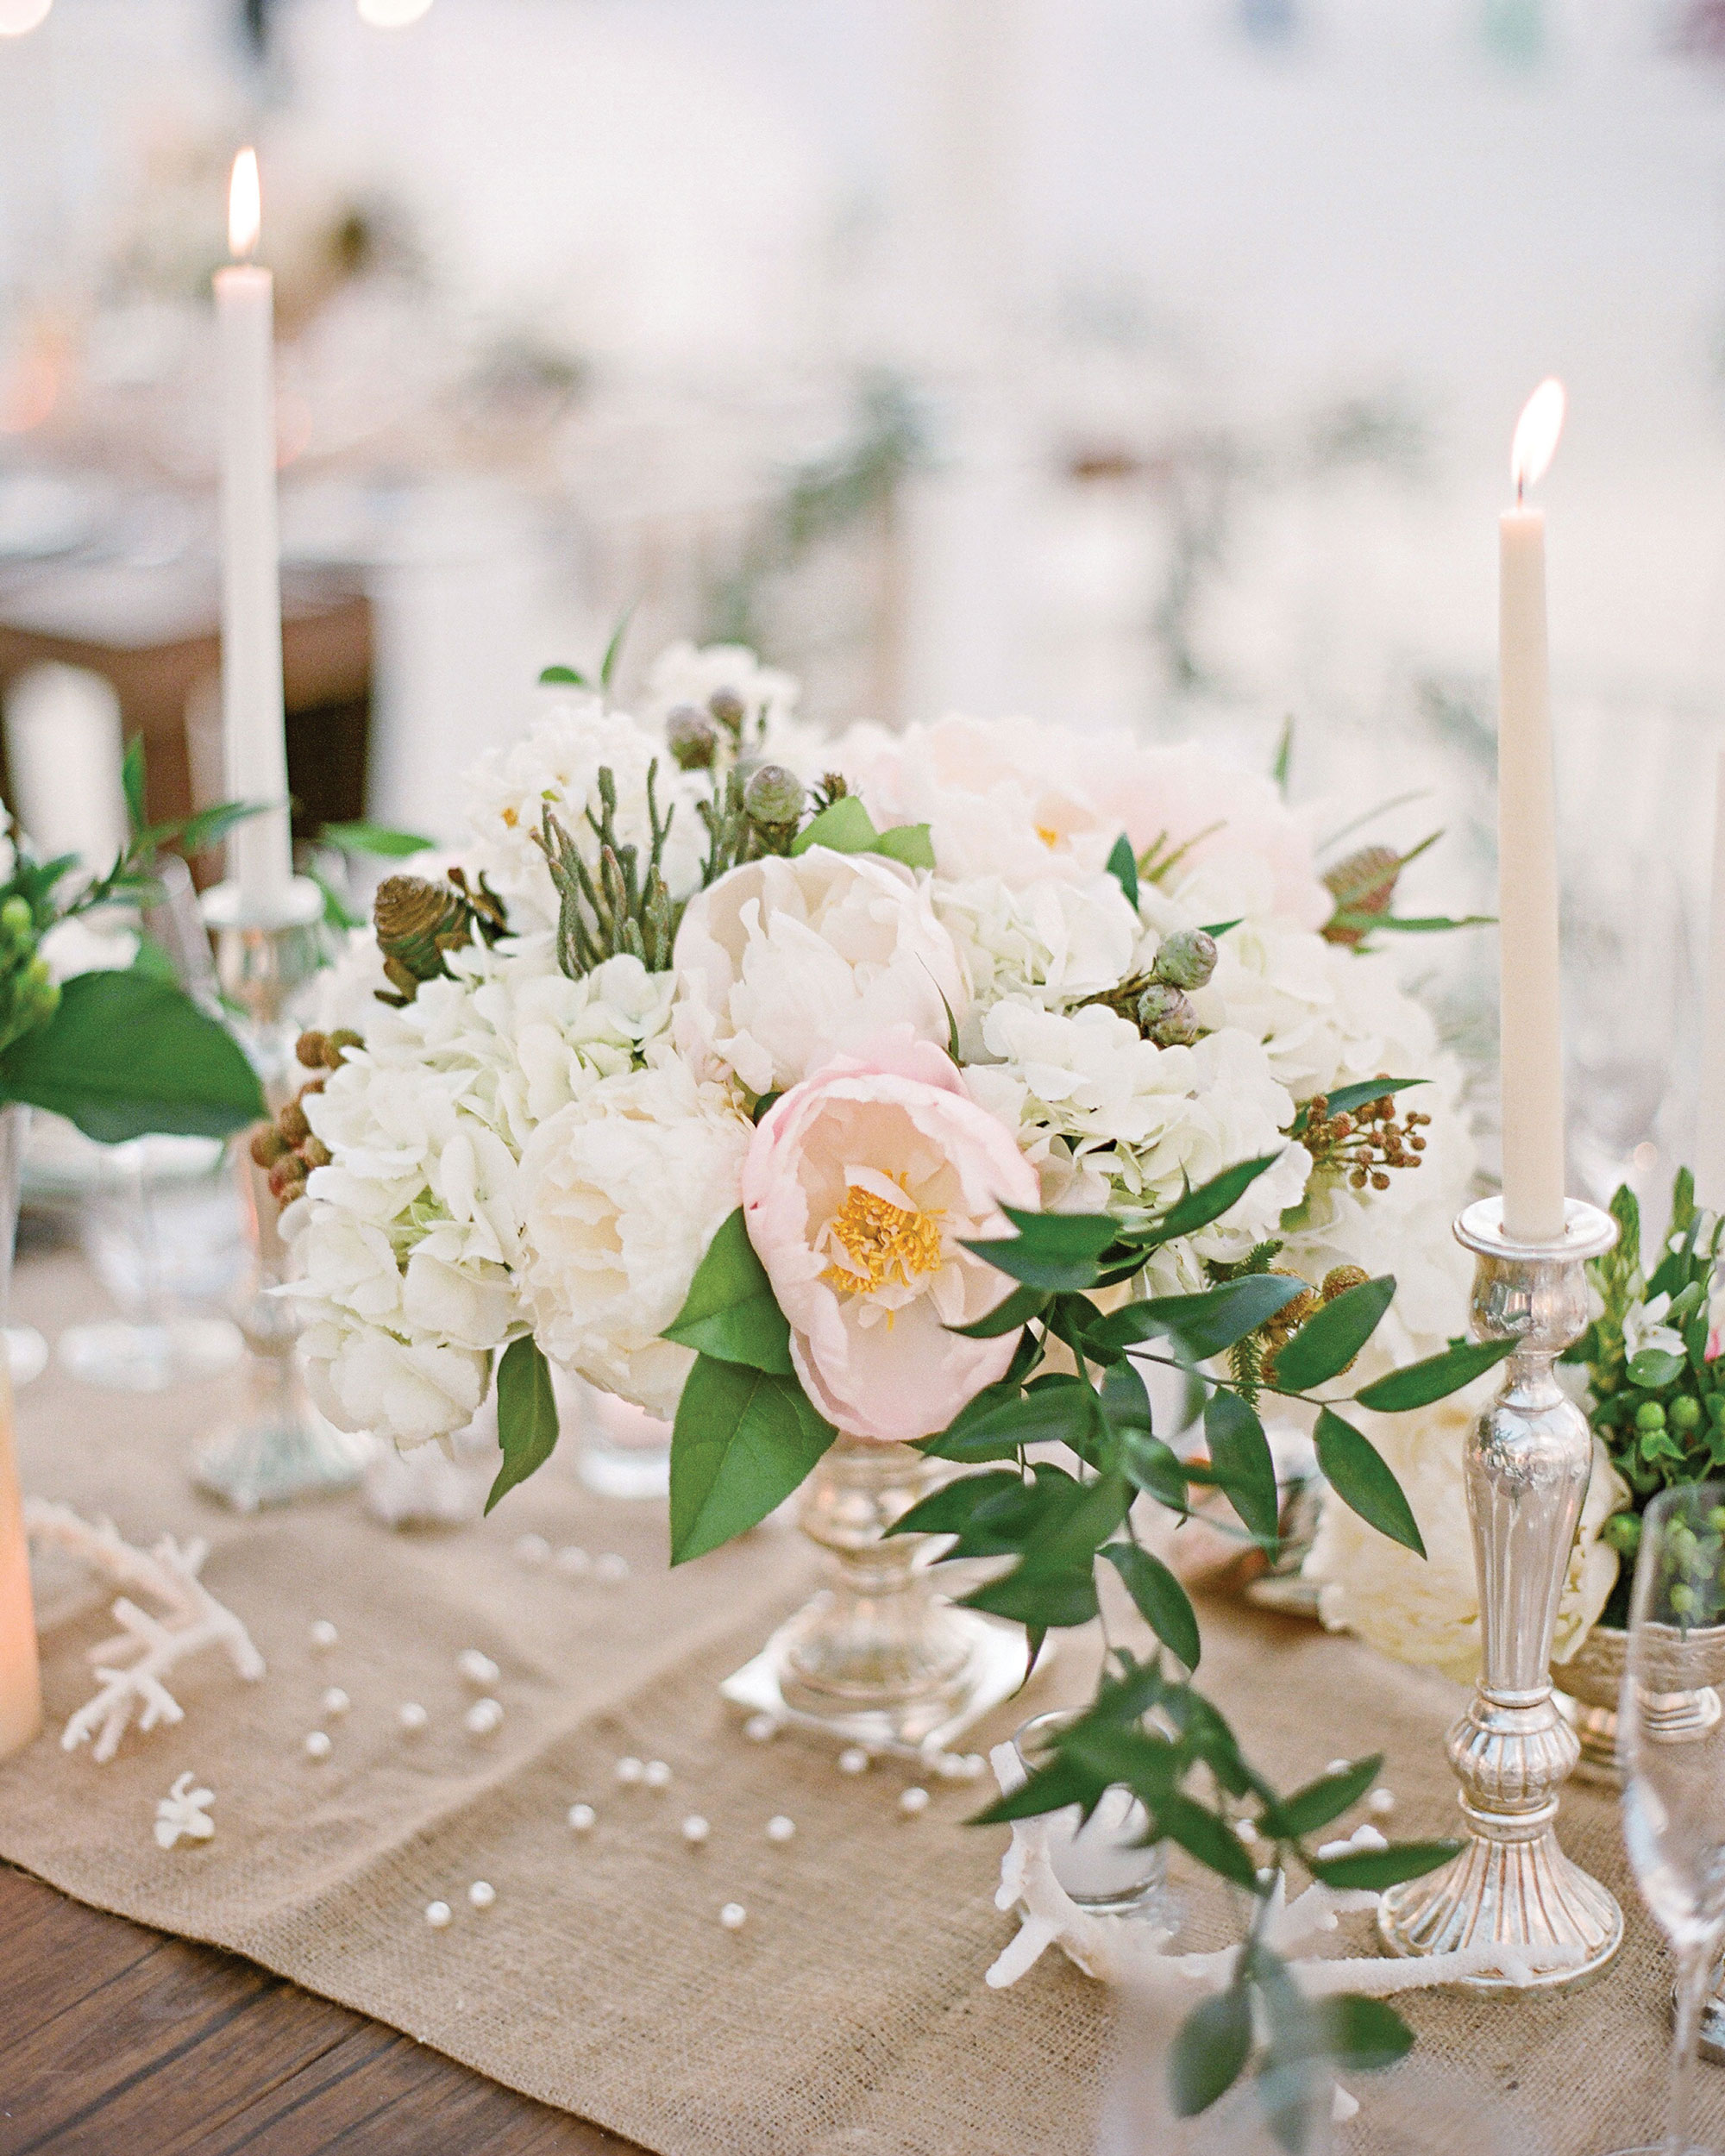 Flower Arrangement Ideas For Weddings: 50 Wedding Centerpiece Ideas We Love